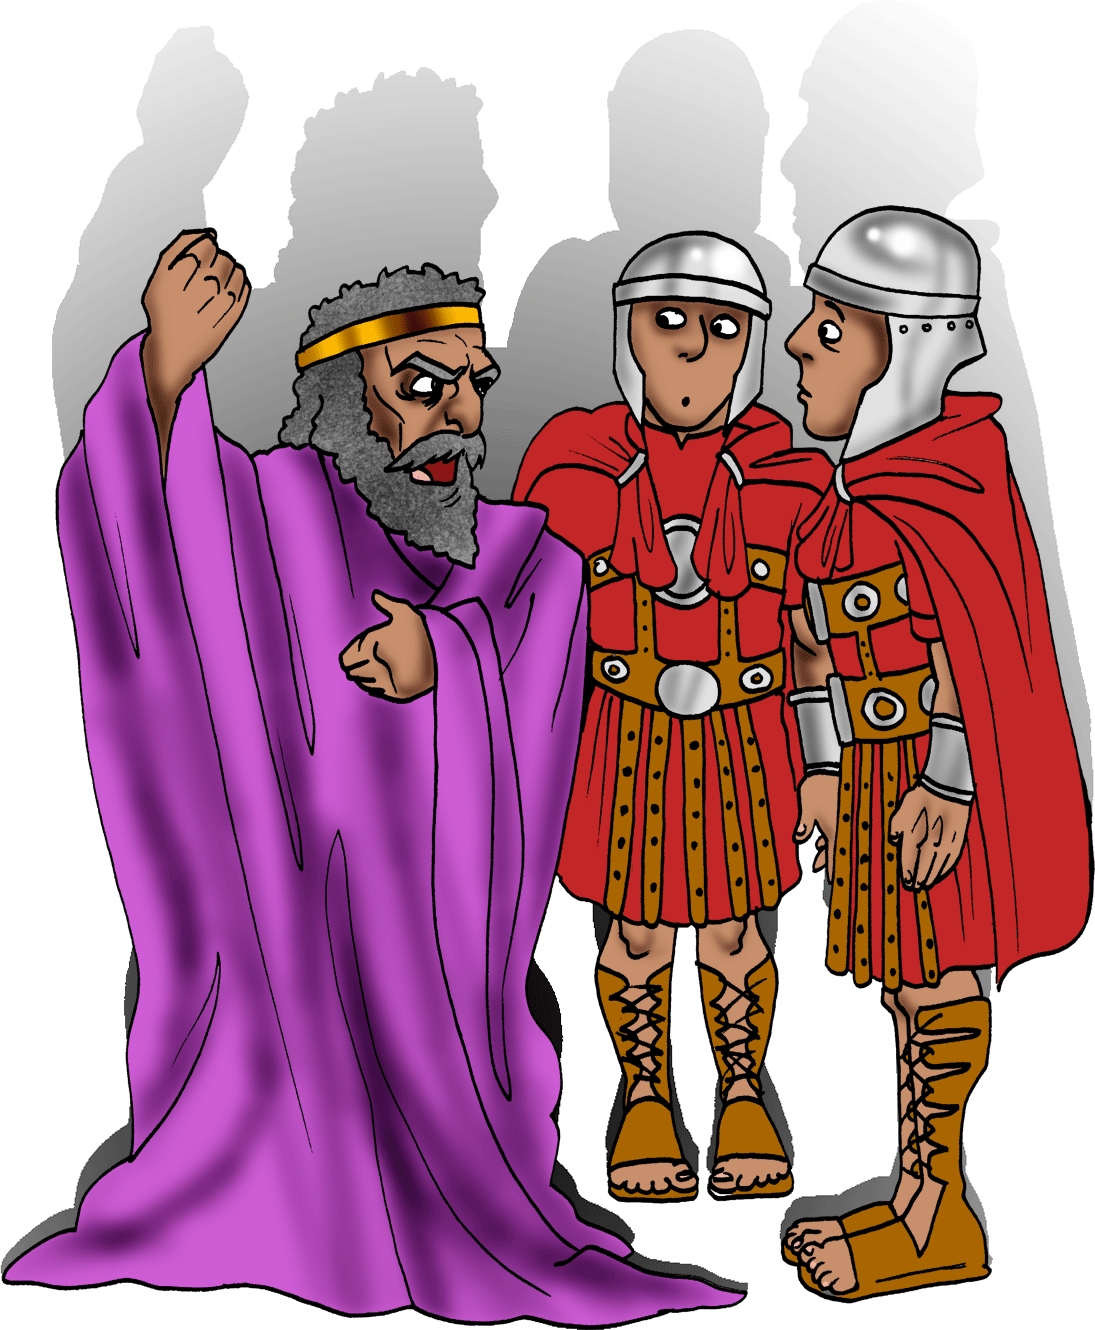 King herod clipart clip art transparent download King Herod was not happy that Yeshua (Jesus) and His parents had ... clip art transparent download